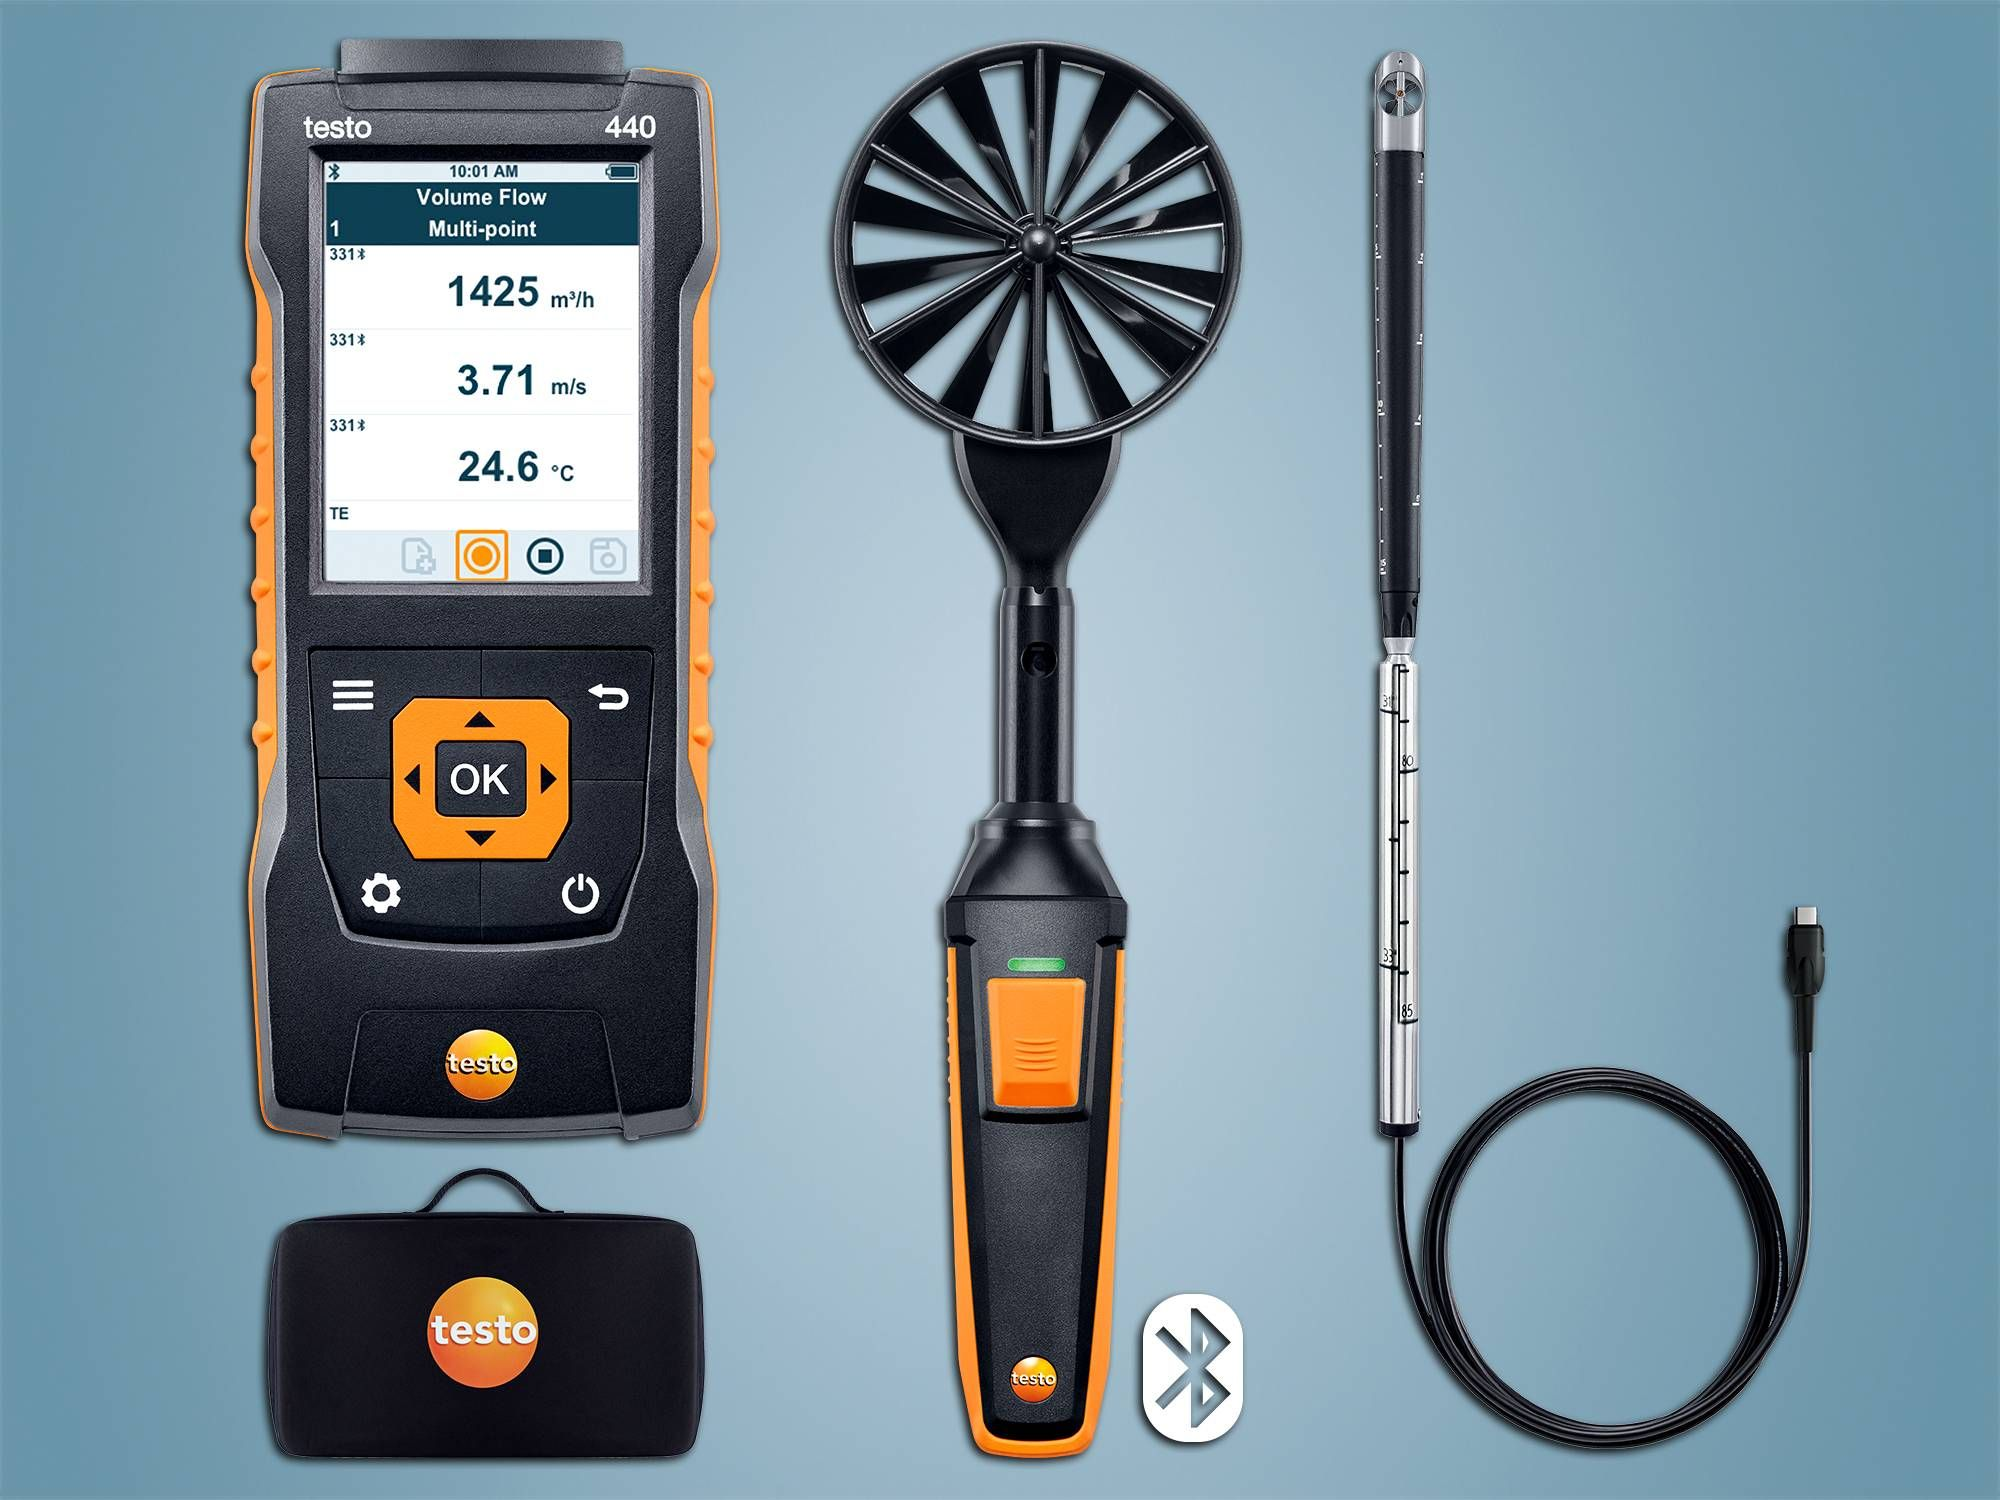 testo 440 Air Flow ComboKit 2 with Bluetooth